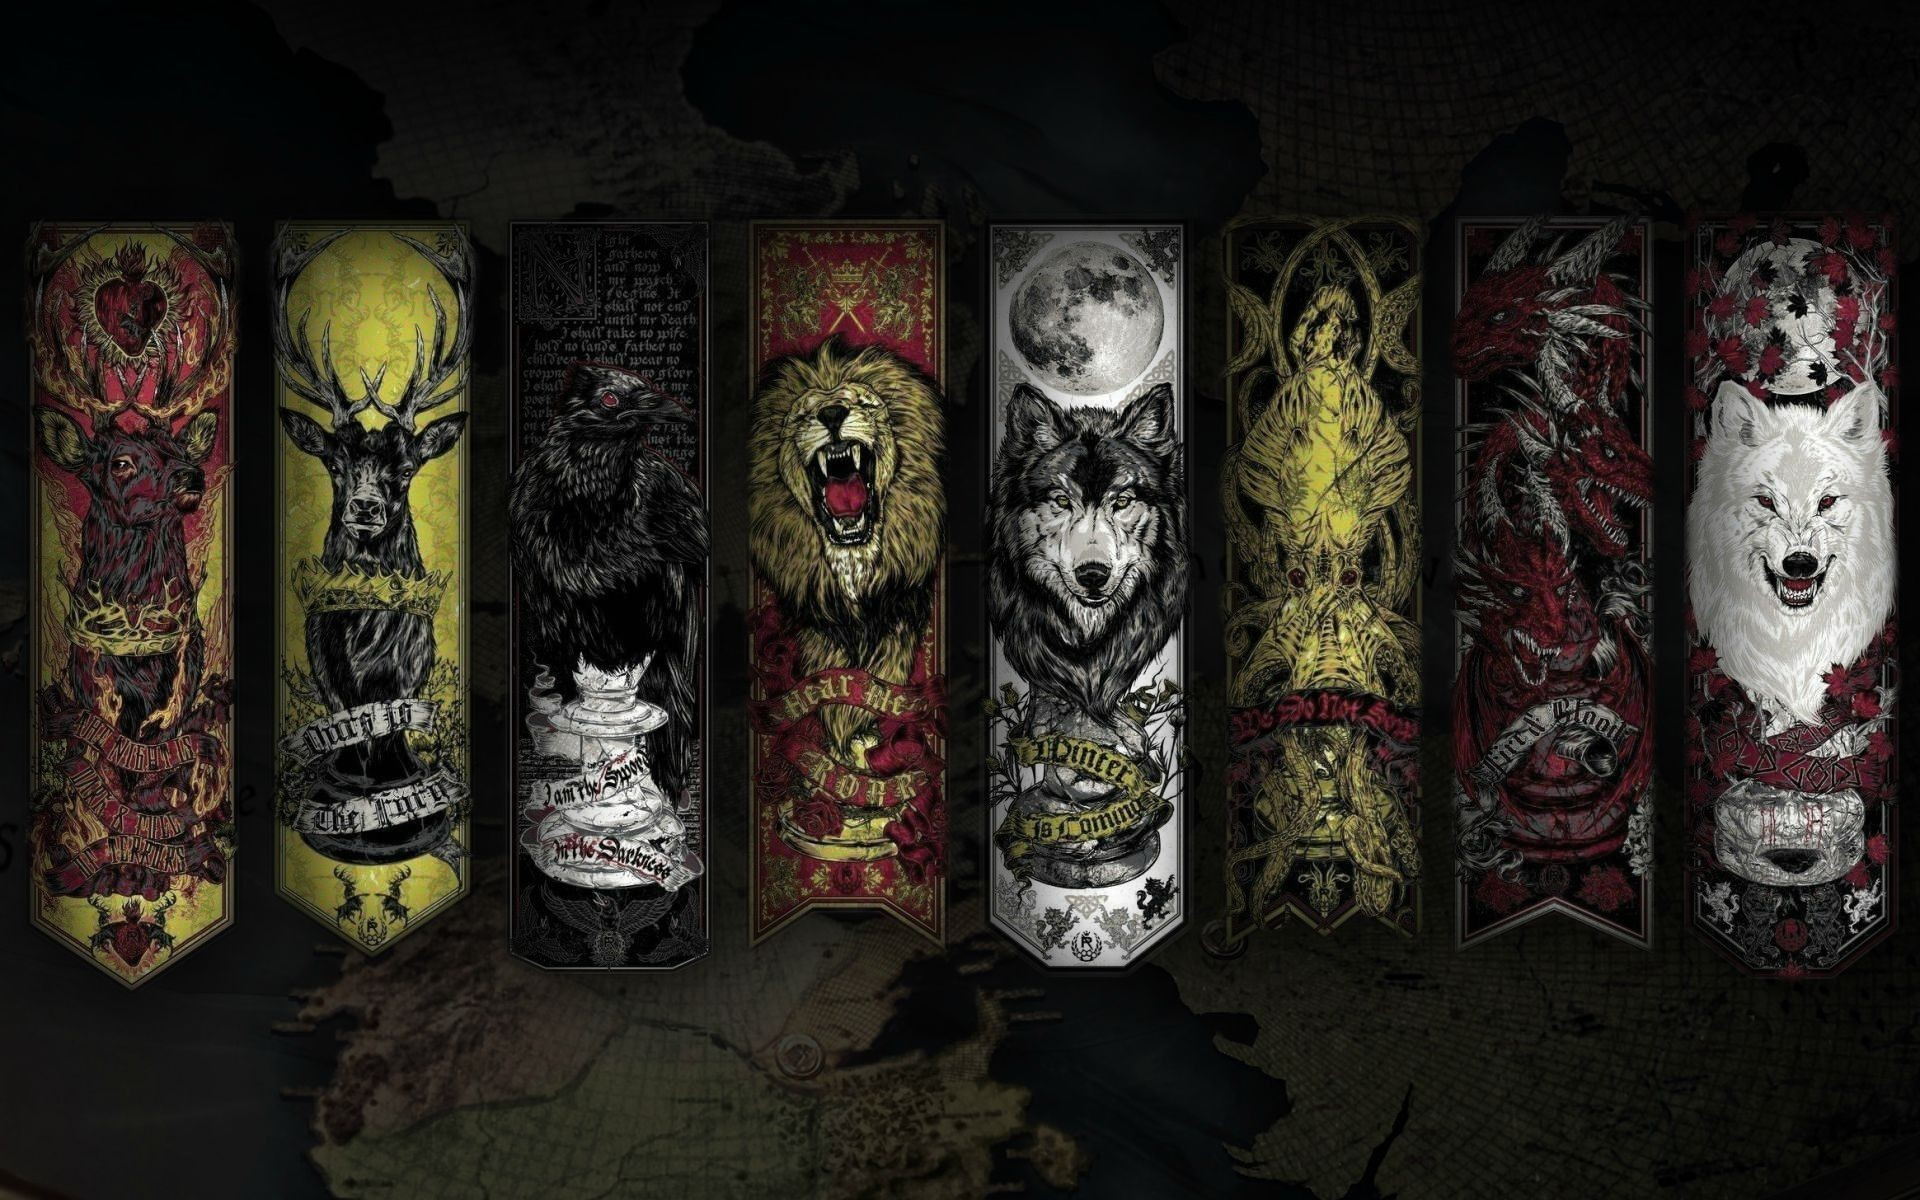 Westeros Map Wallpaper (48+ images) on the walking dead wallpaper, usa map wallpaper, far cry 4 map wallpaper, oz map wallpaper, united states map wallpaper, map of middle earth wallpaper, assassin's creed map wallpaper,